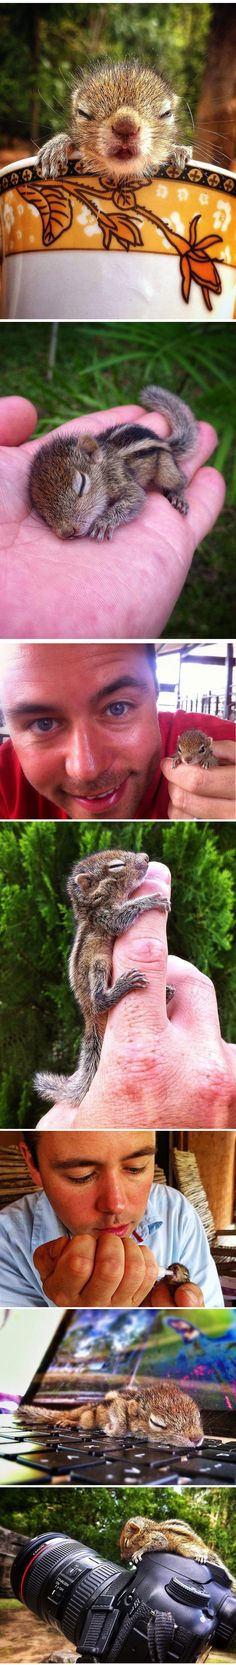 Cute baby squirrel rescued by BBC filmmaker